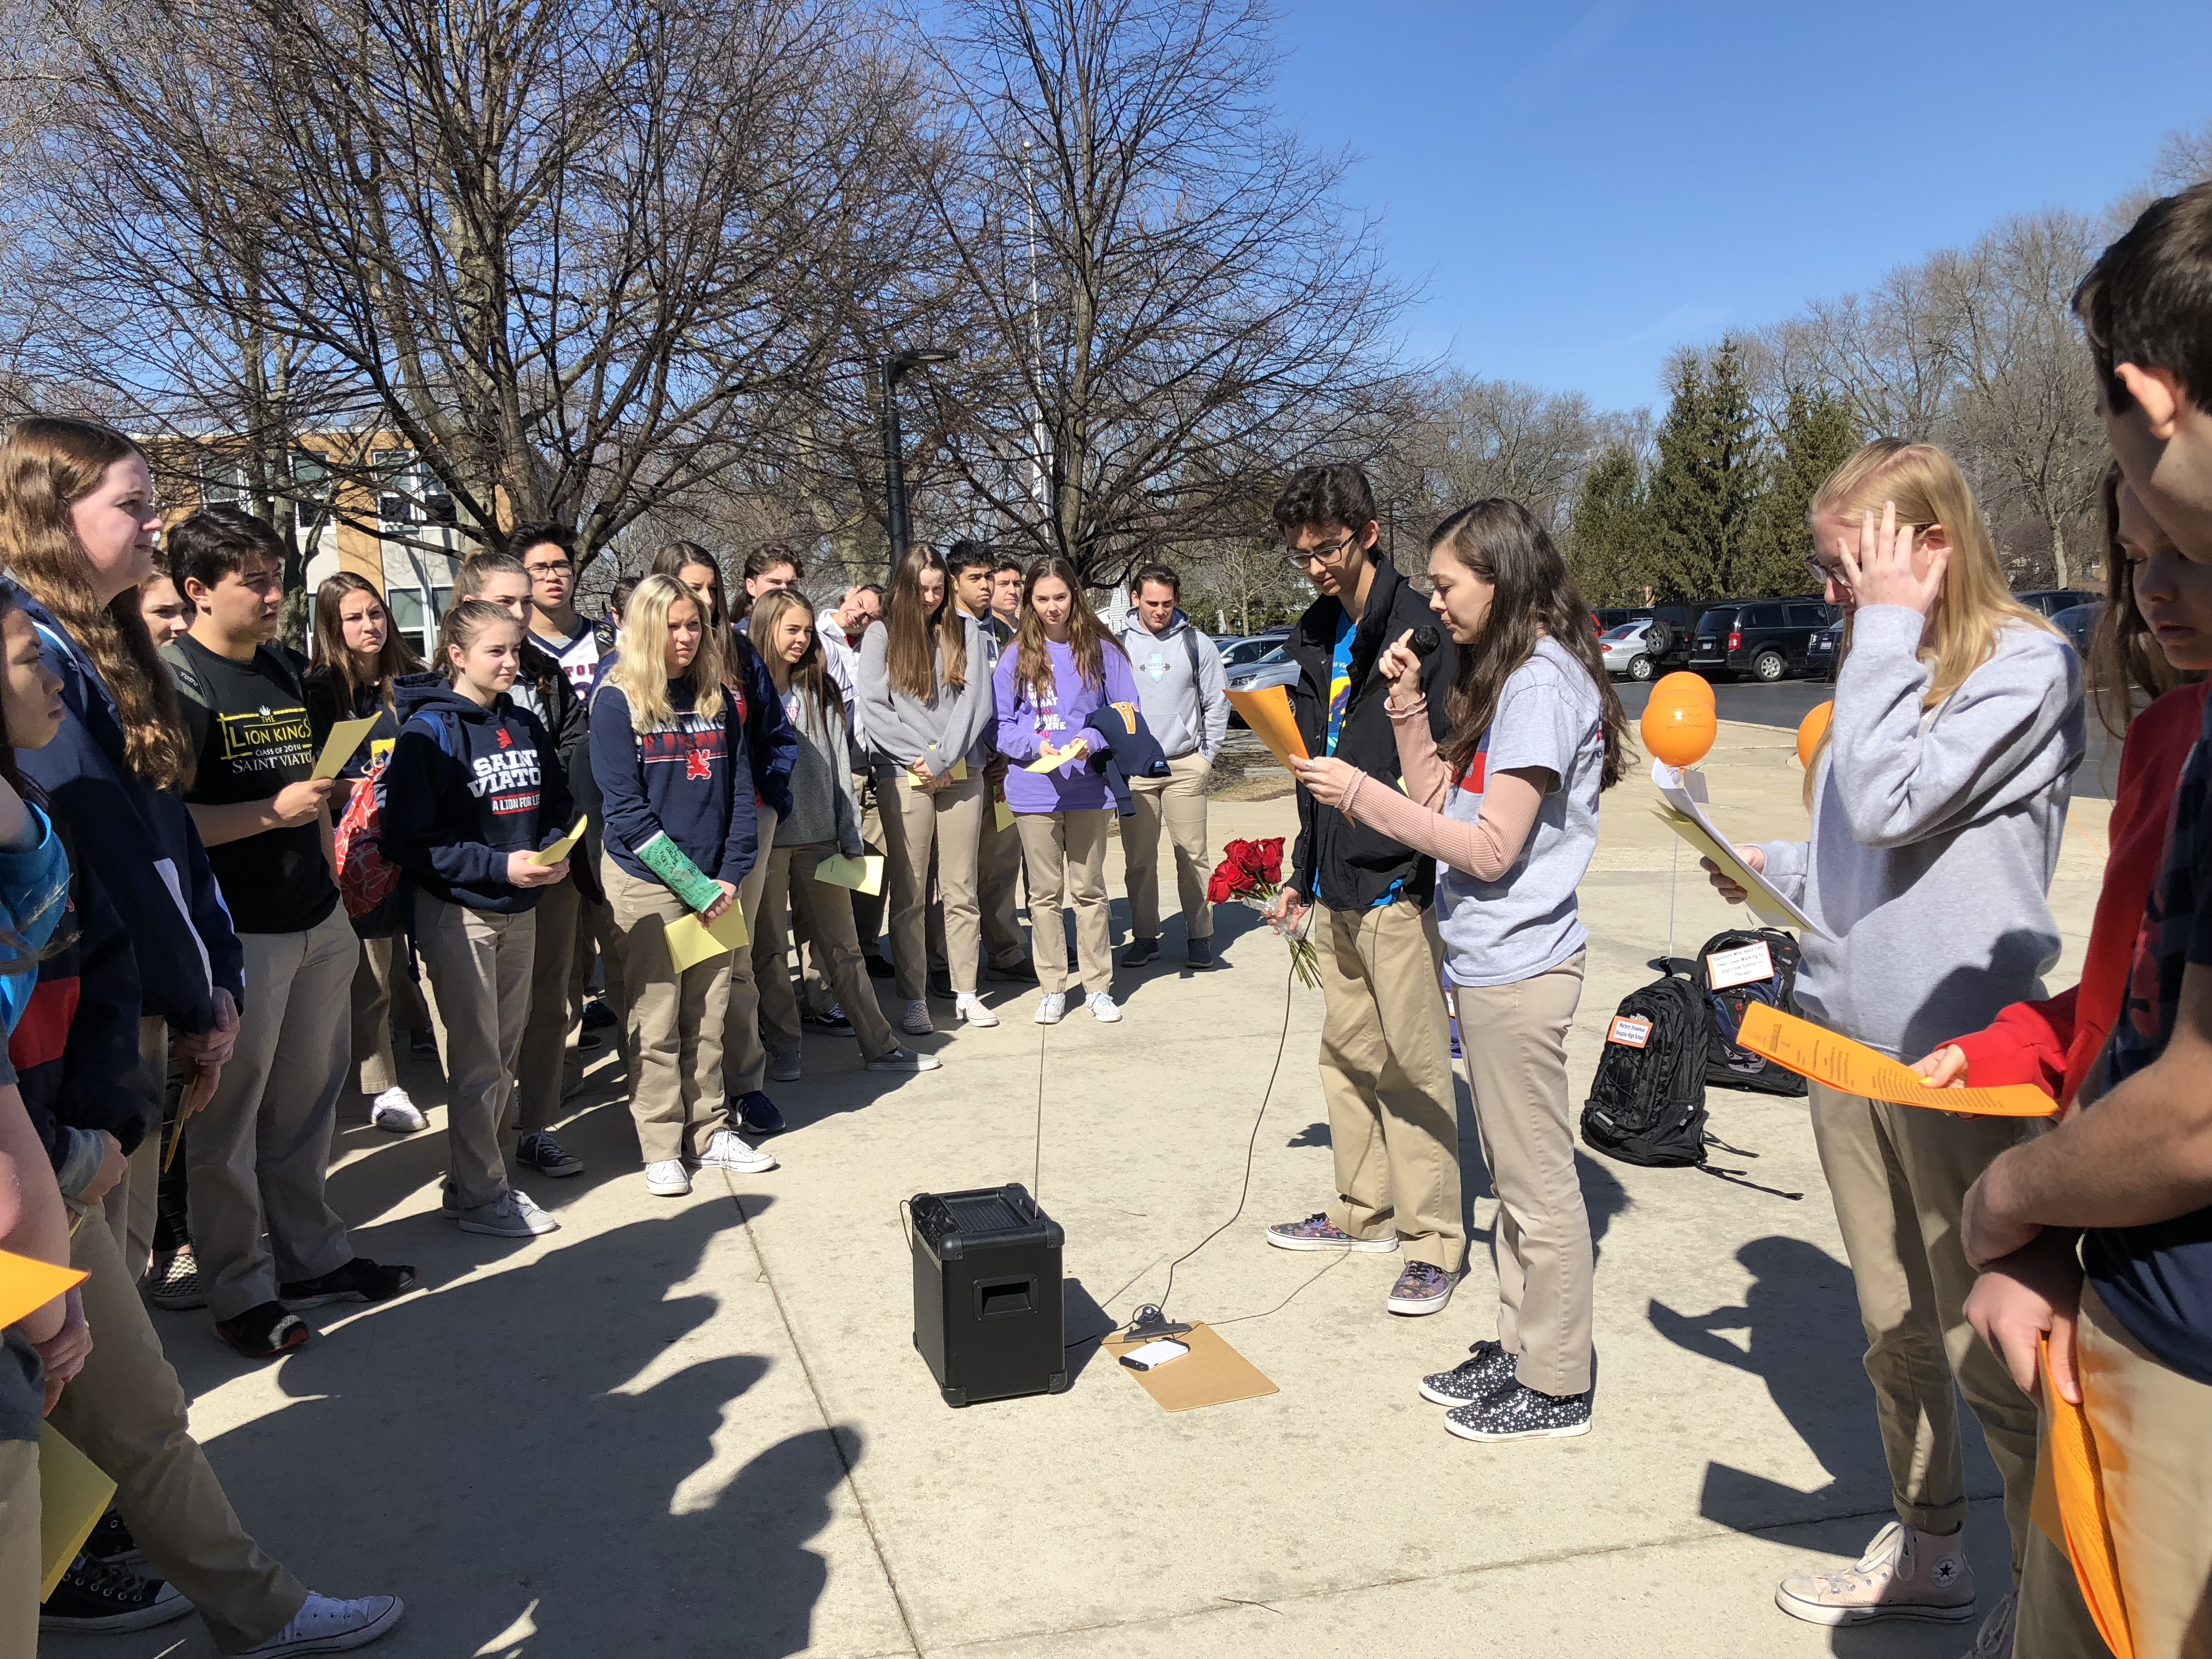 Viatorian Mission at Heart of Student Walkout